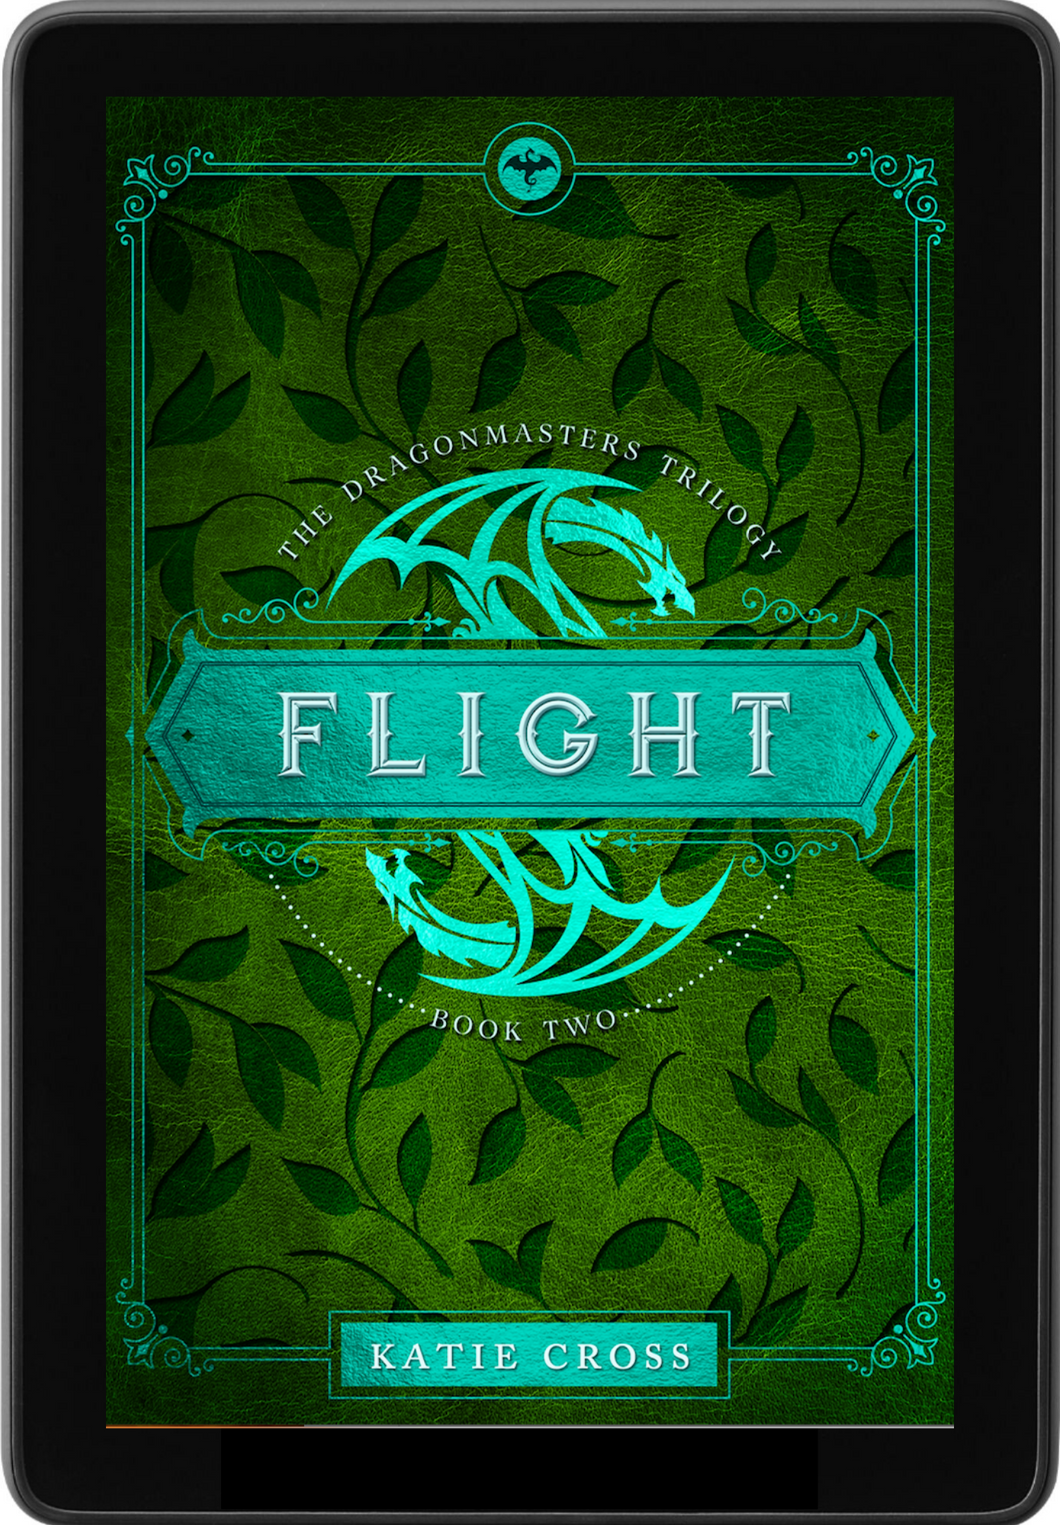 FLIGHT (The Dragonmaster Trilogy Book 2)